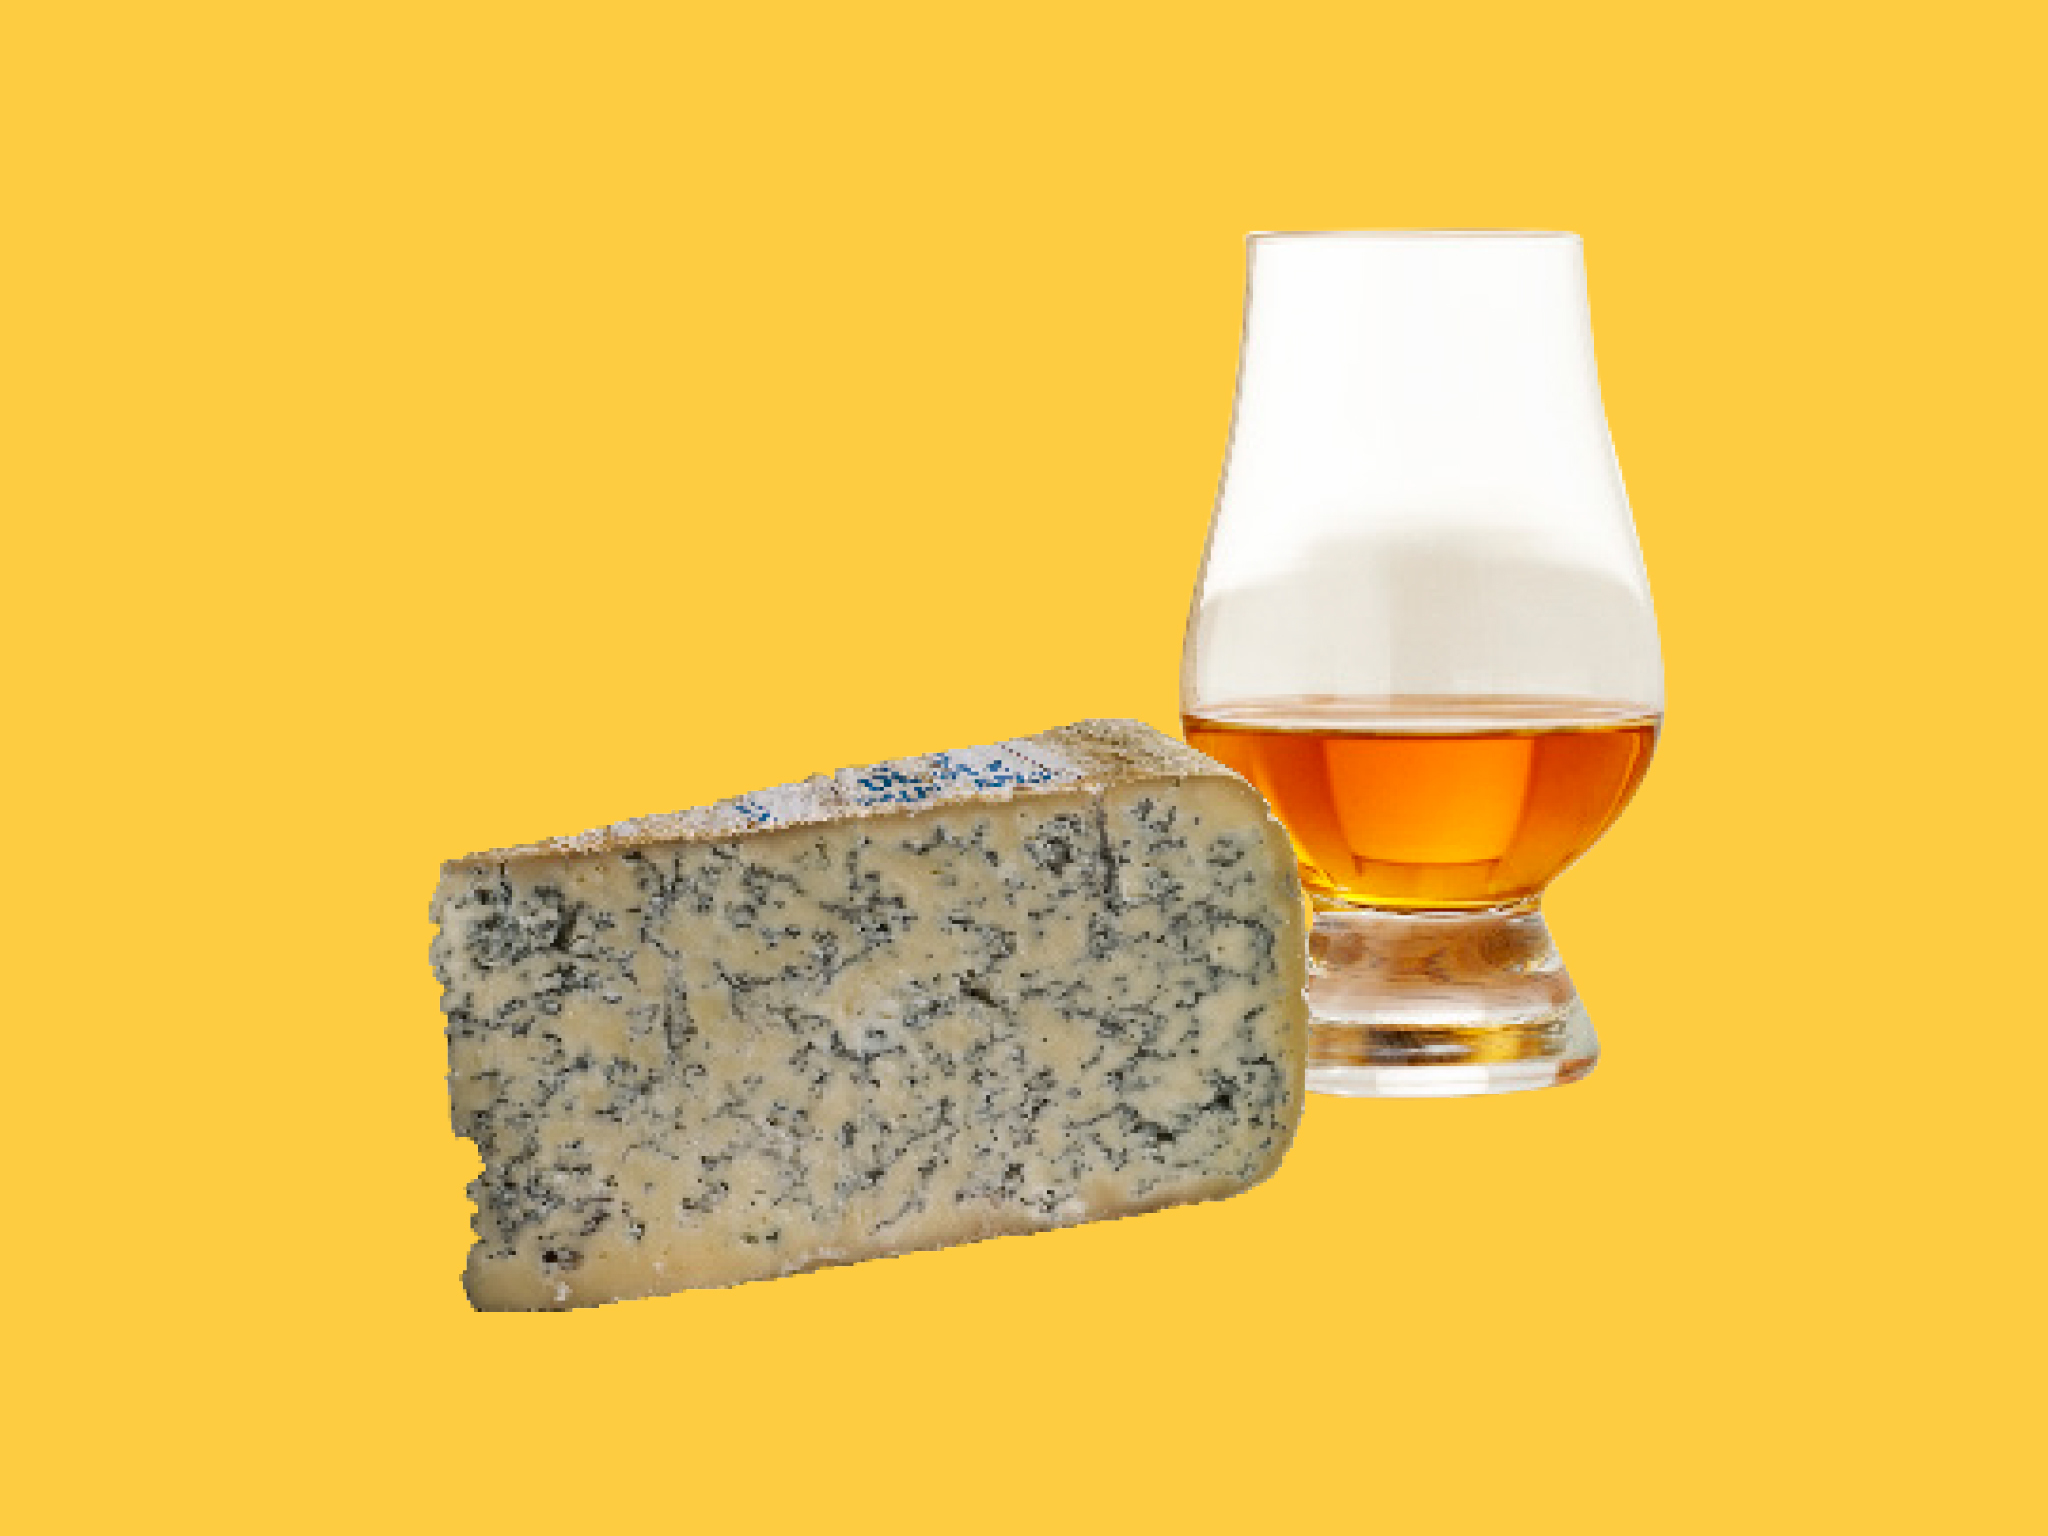 Blue cheese and whisky